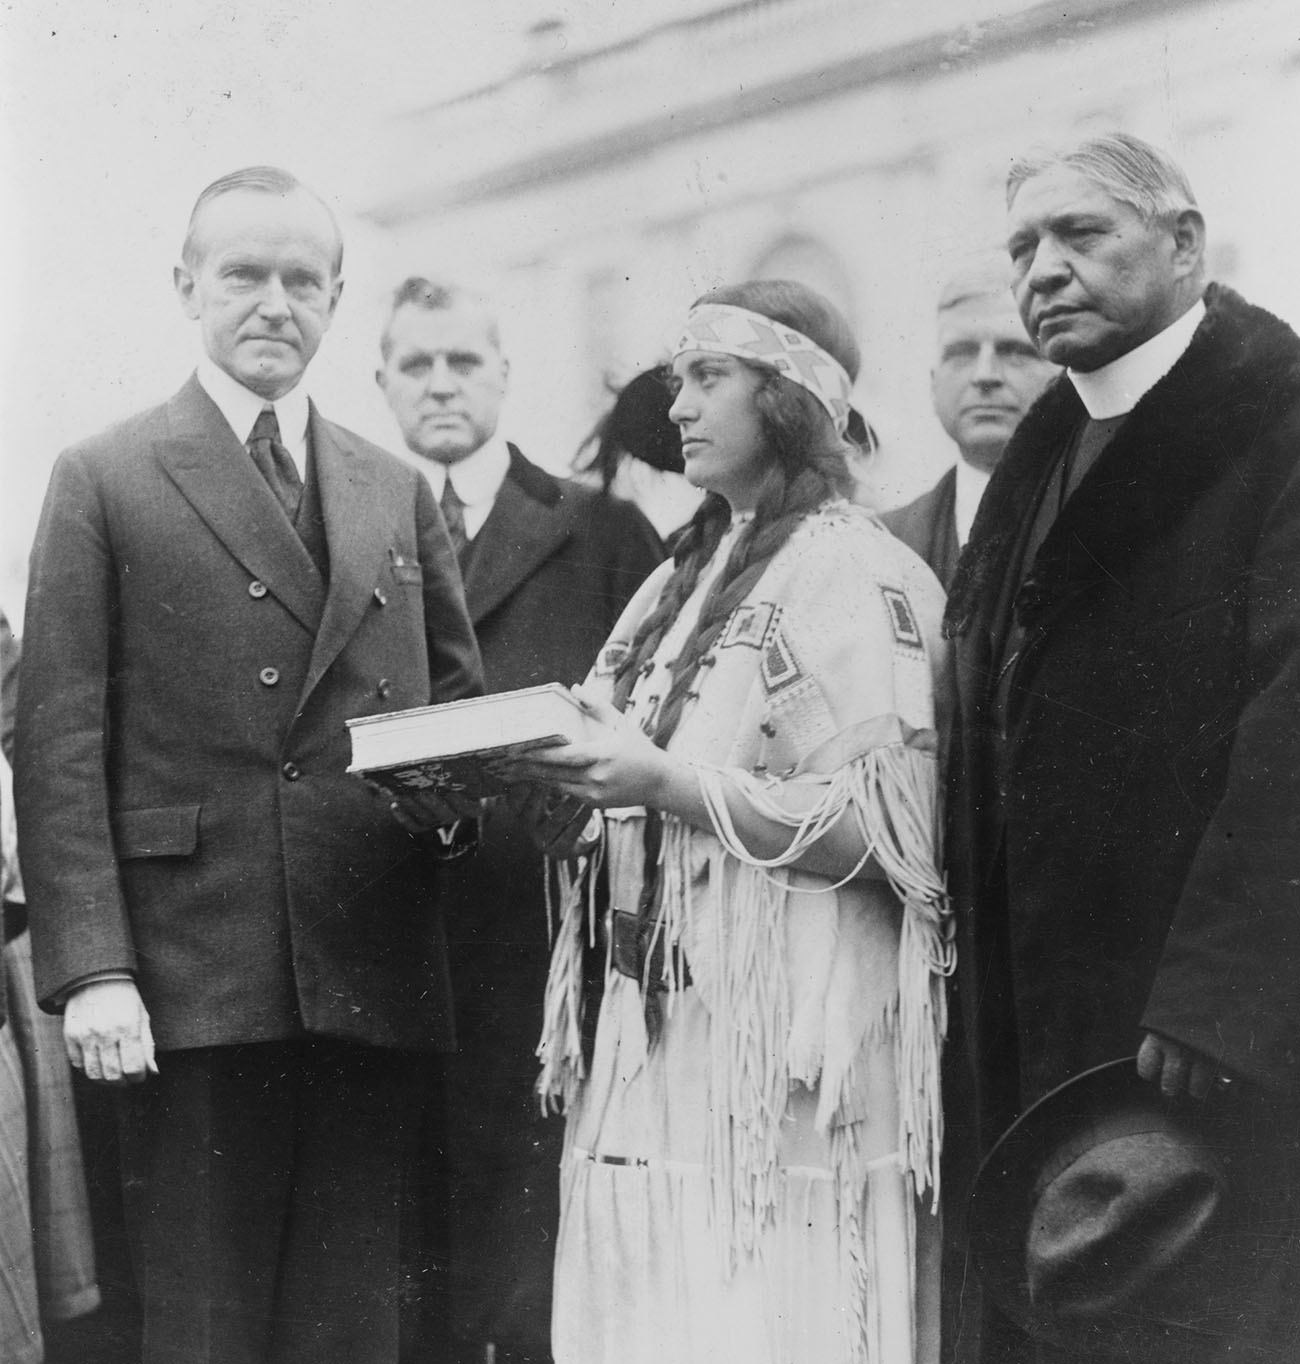 Figure 5.2. On December 13, 1923, Ruth Muskrat [Bronson] presented President Calvin Coolidge with a copy of The Red Man in the United States: An Intimate Study of the Social, Economic and Religious Life of the American Indian, by G. E. E. Lundquist (New York: George H. Doran Company). On June 2 of 1924, Congress would pass—and Coolidge would sign into law—the Indian Citizenship Act. Library of Congress, National Photo Company Collection. (c) Library of Congress, National Photo Company Collection (p. 25, no. 27839).